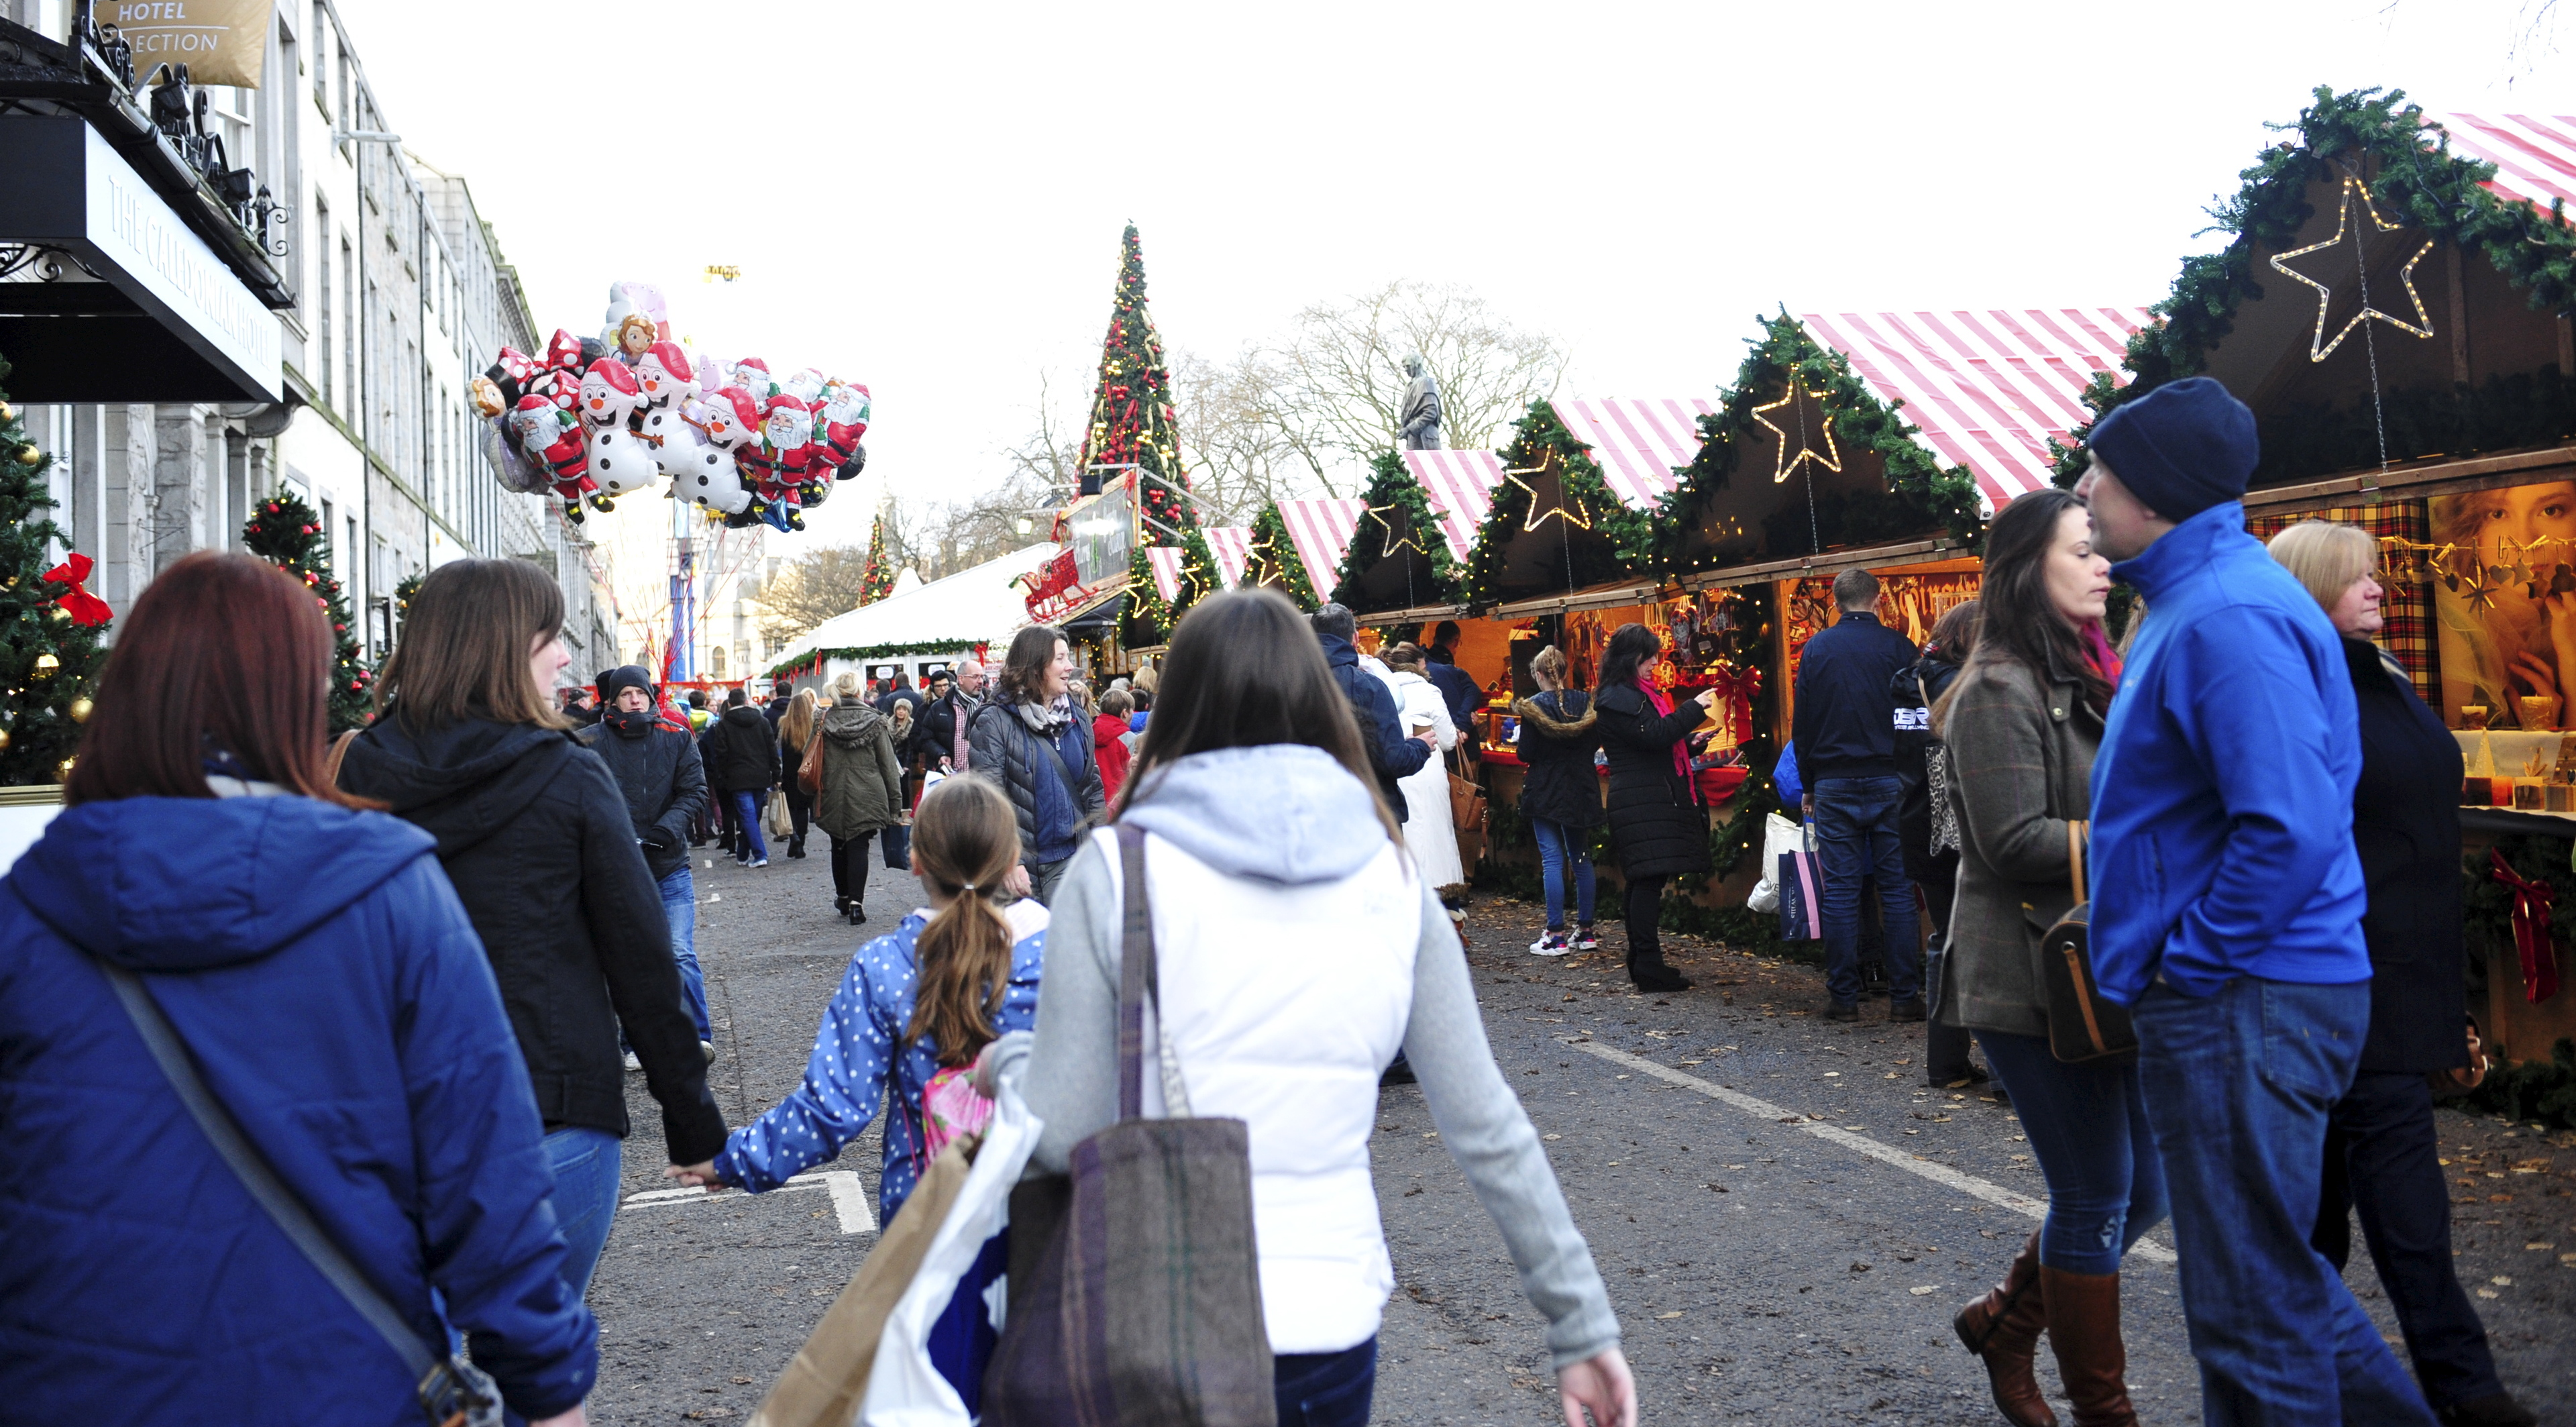 Union Terrace has hosted Aberdeen's Christmas Village previously.